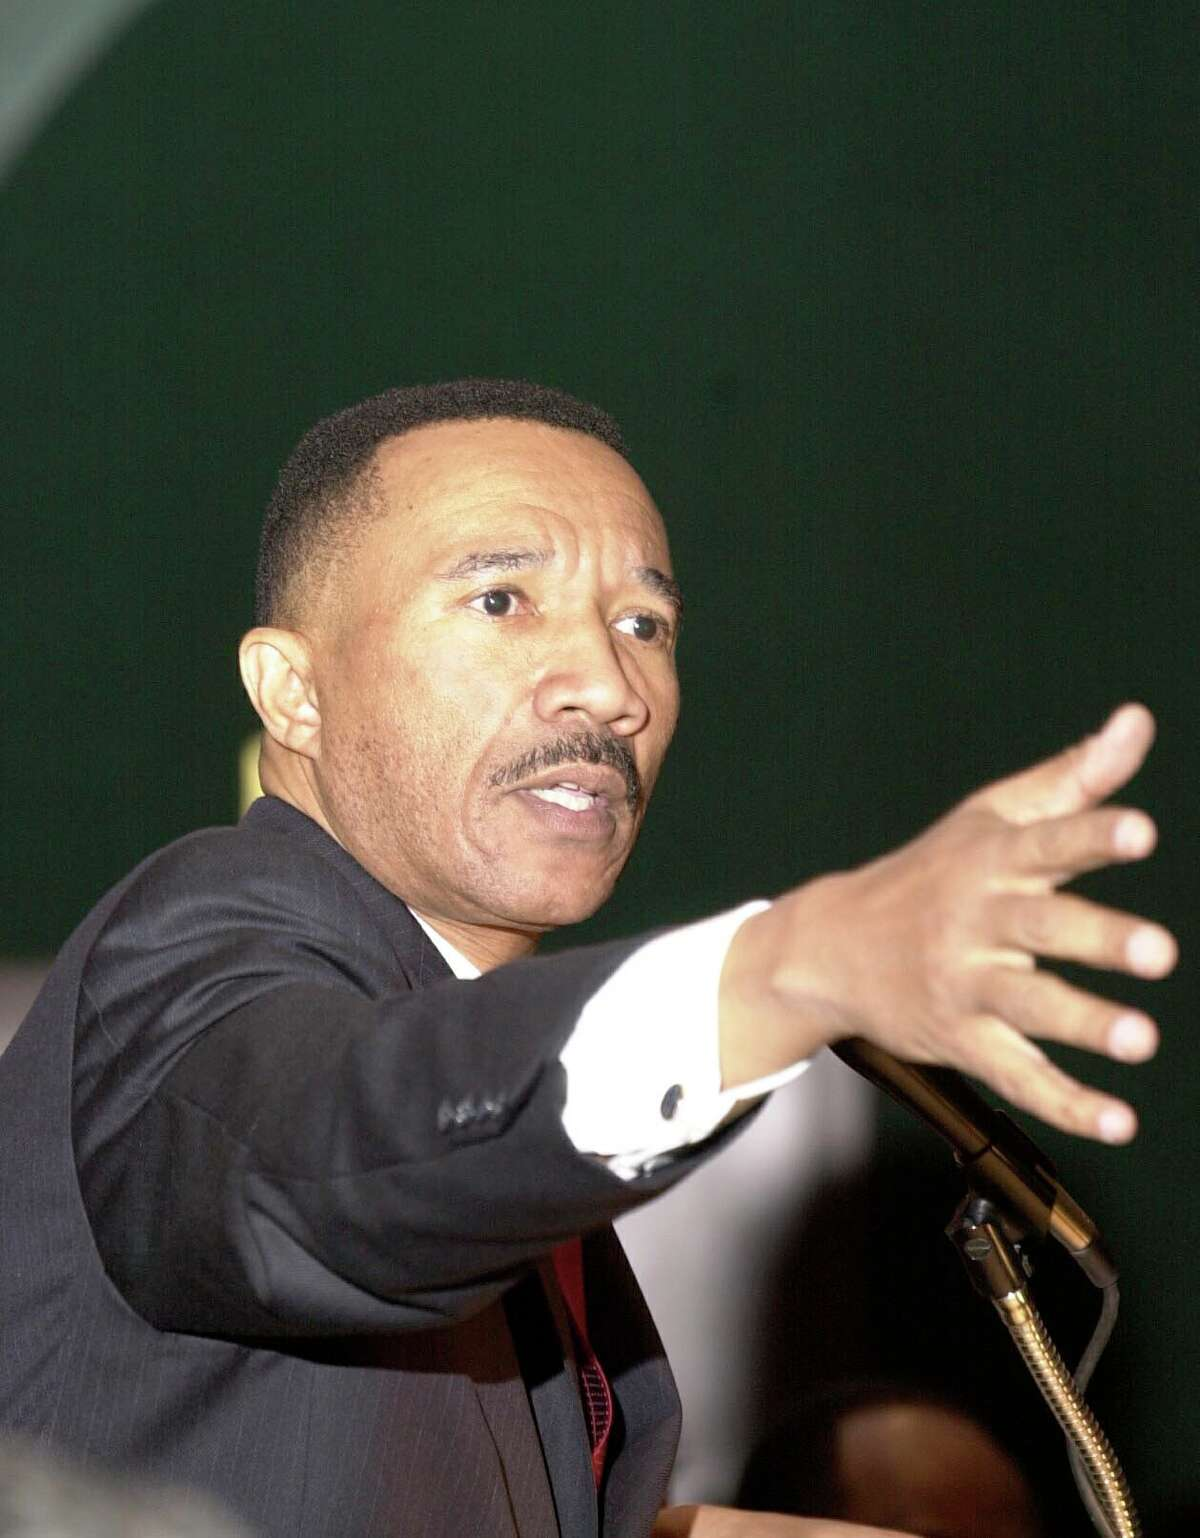 Kweisi Mfume, the former president and CEO of the NAACP, will speak at Norwalk Community College on Wednesday.